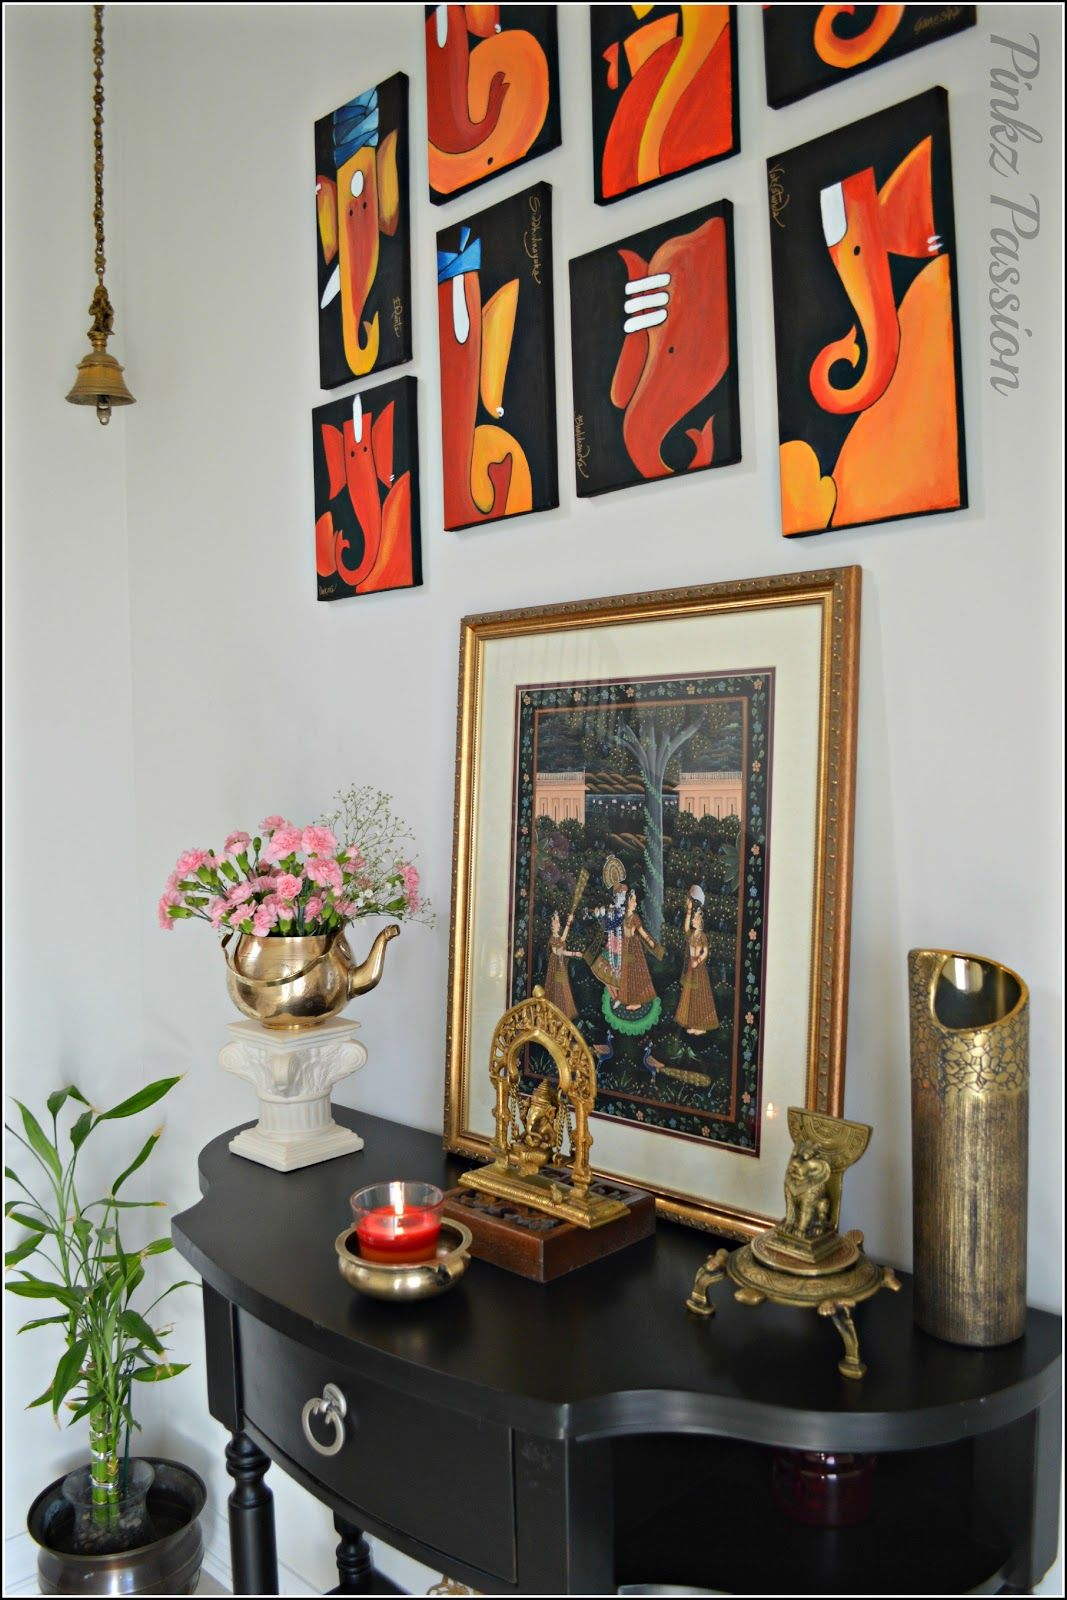 Home Design Ideas Hindi: Swing Ganesha, Spring Décor, Front Foyer, Indian Décor